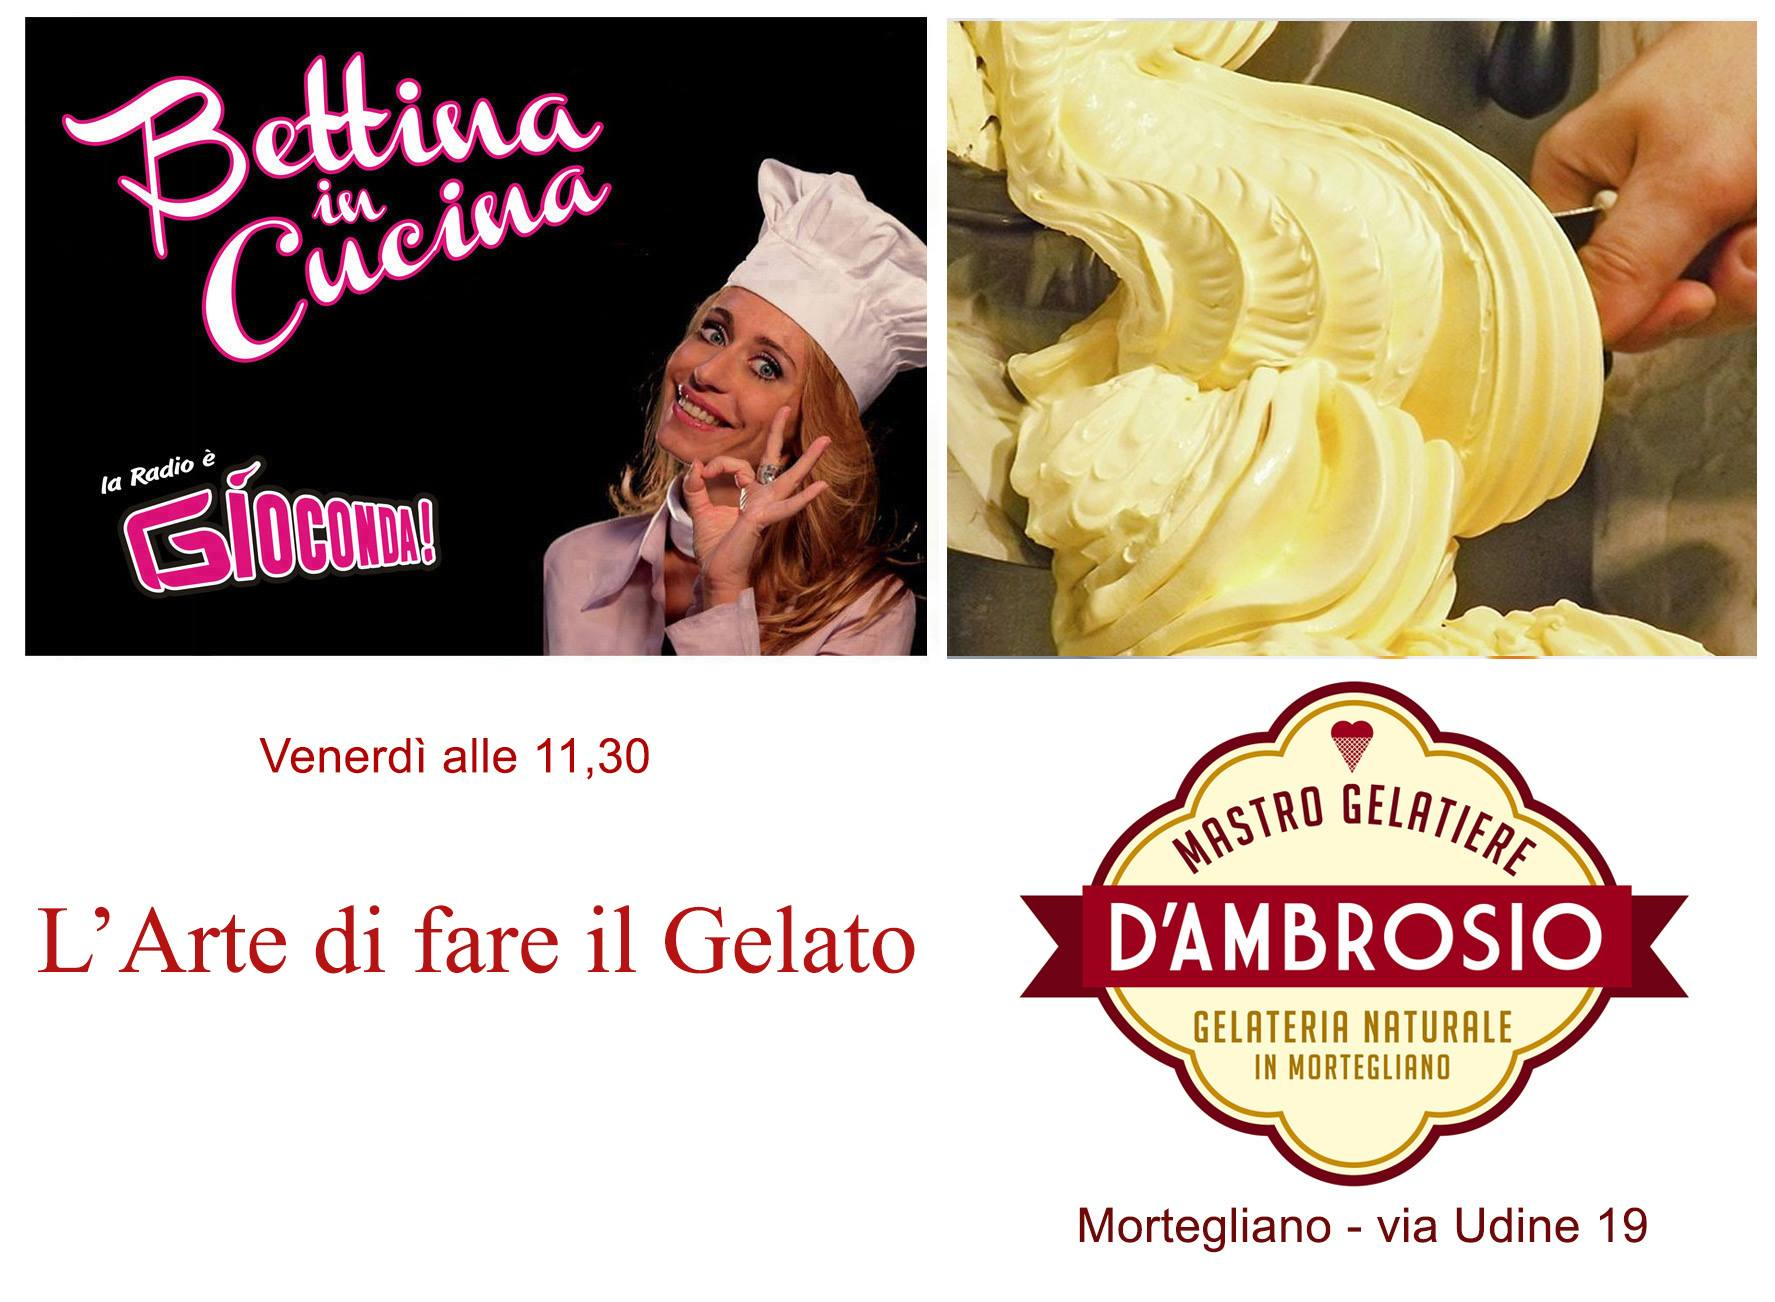 Bettina in Cucina con D'Ambrosio Gelateria Naturale